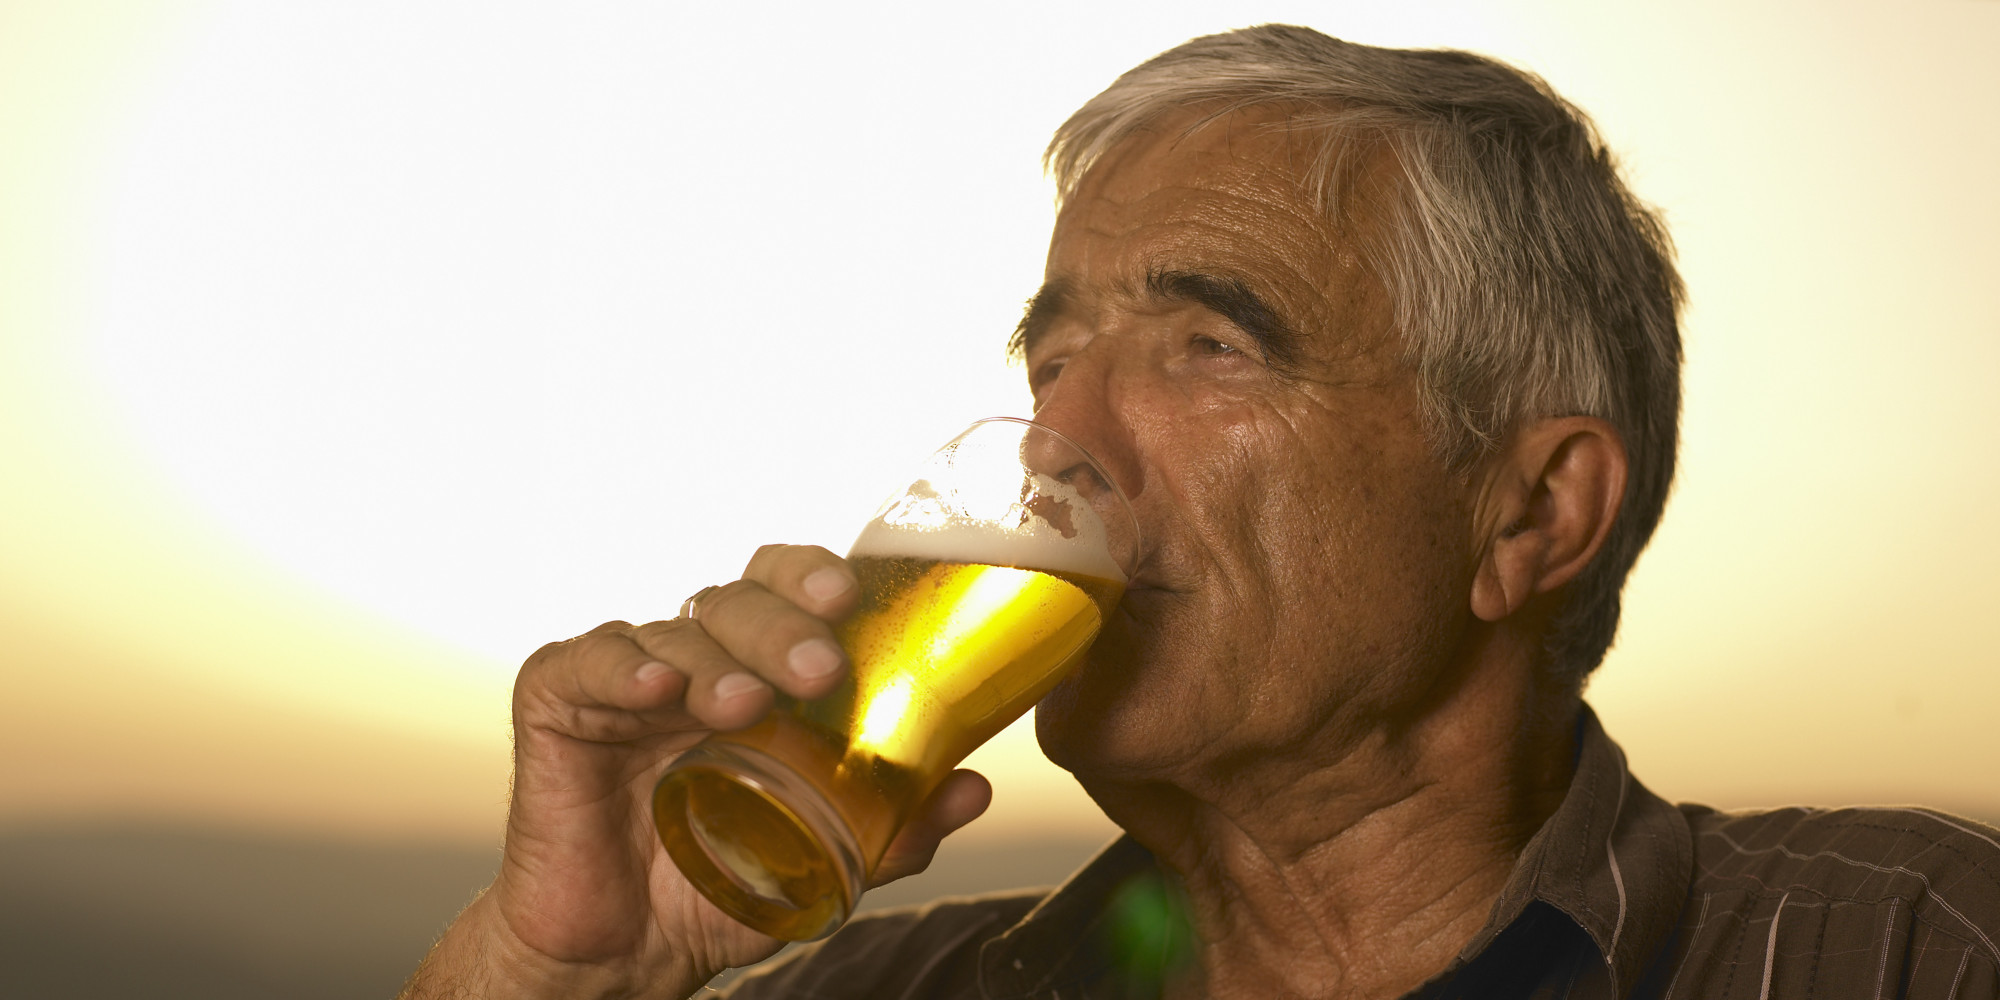 Heavy Drinking Linked To Memory Loss In Older Men, Study Shows | The ...